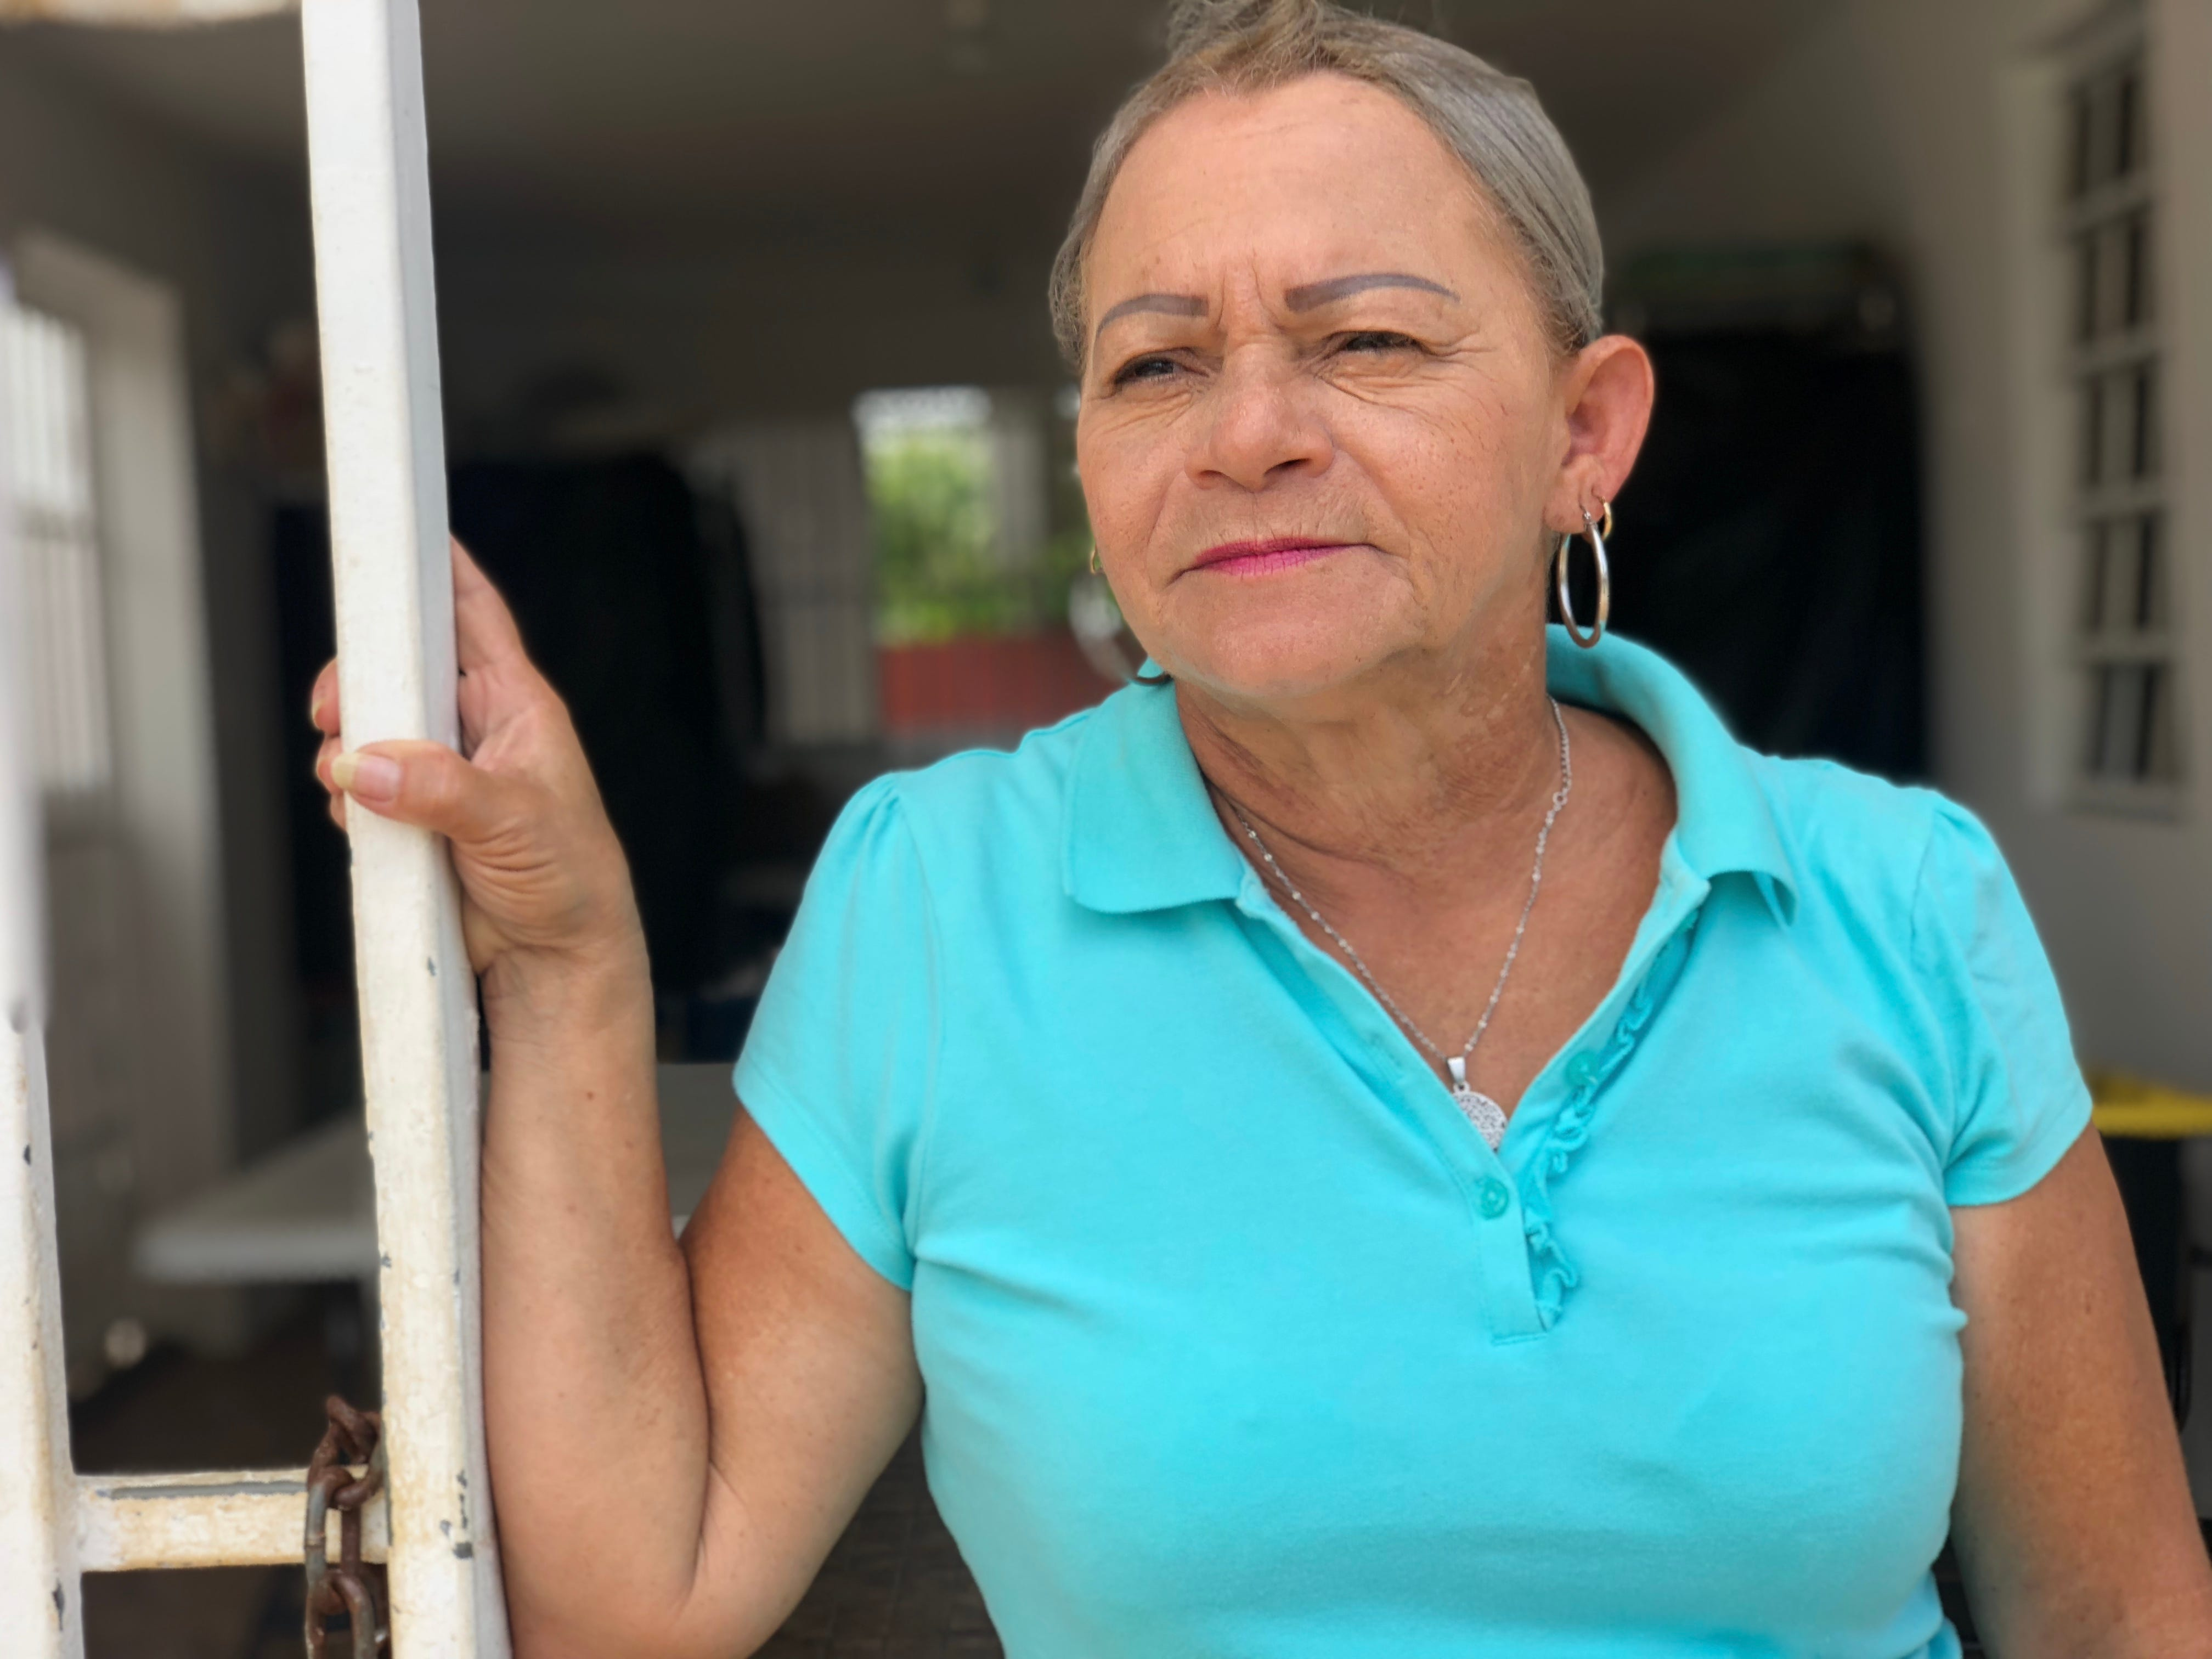 Carmen Torres, 61, has fought off expropriation attempts on her property in Vietnam, a neighborhood south of San Juan on the banks of San Juan Bay.